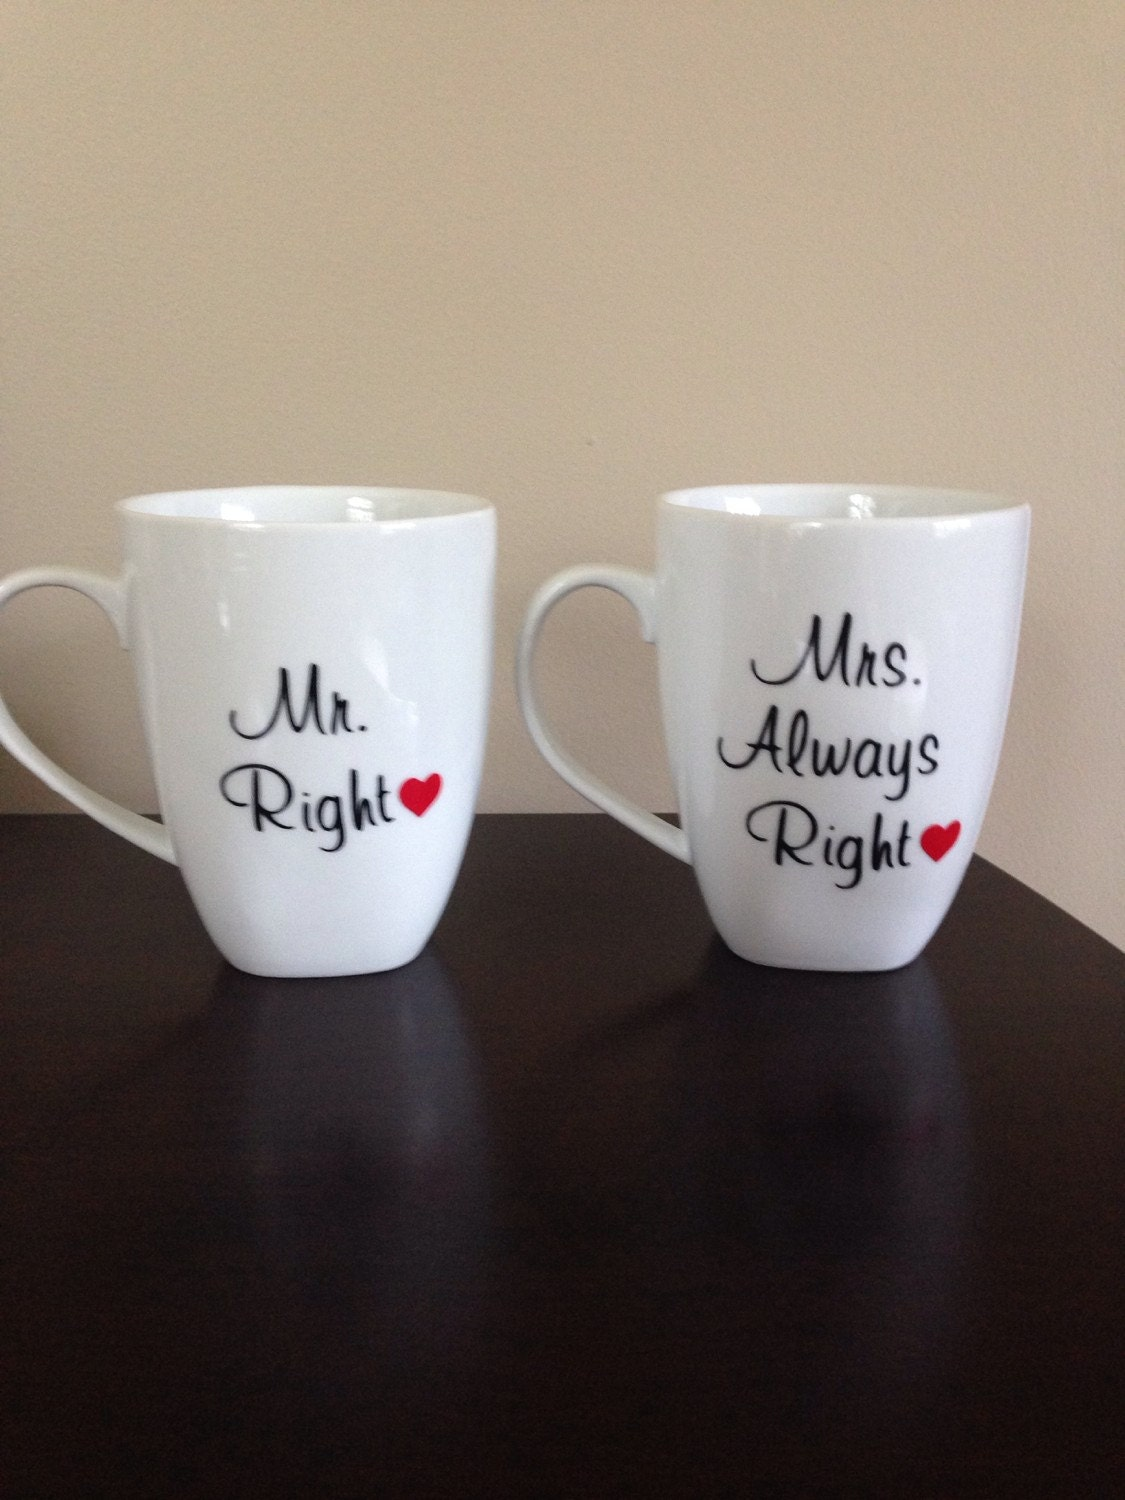 Mrs Always Right Collection Review: Coffee Mugs With Mr. Right And Mrs. Always Right With Hearts